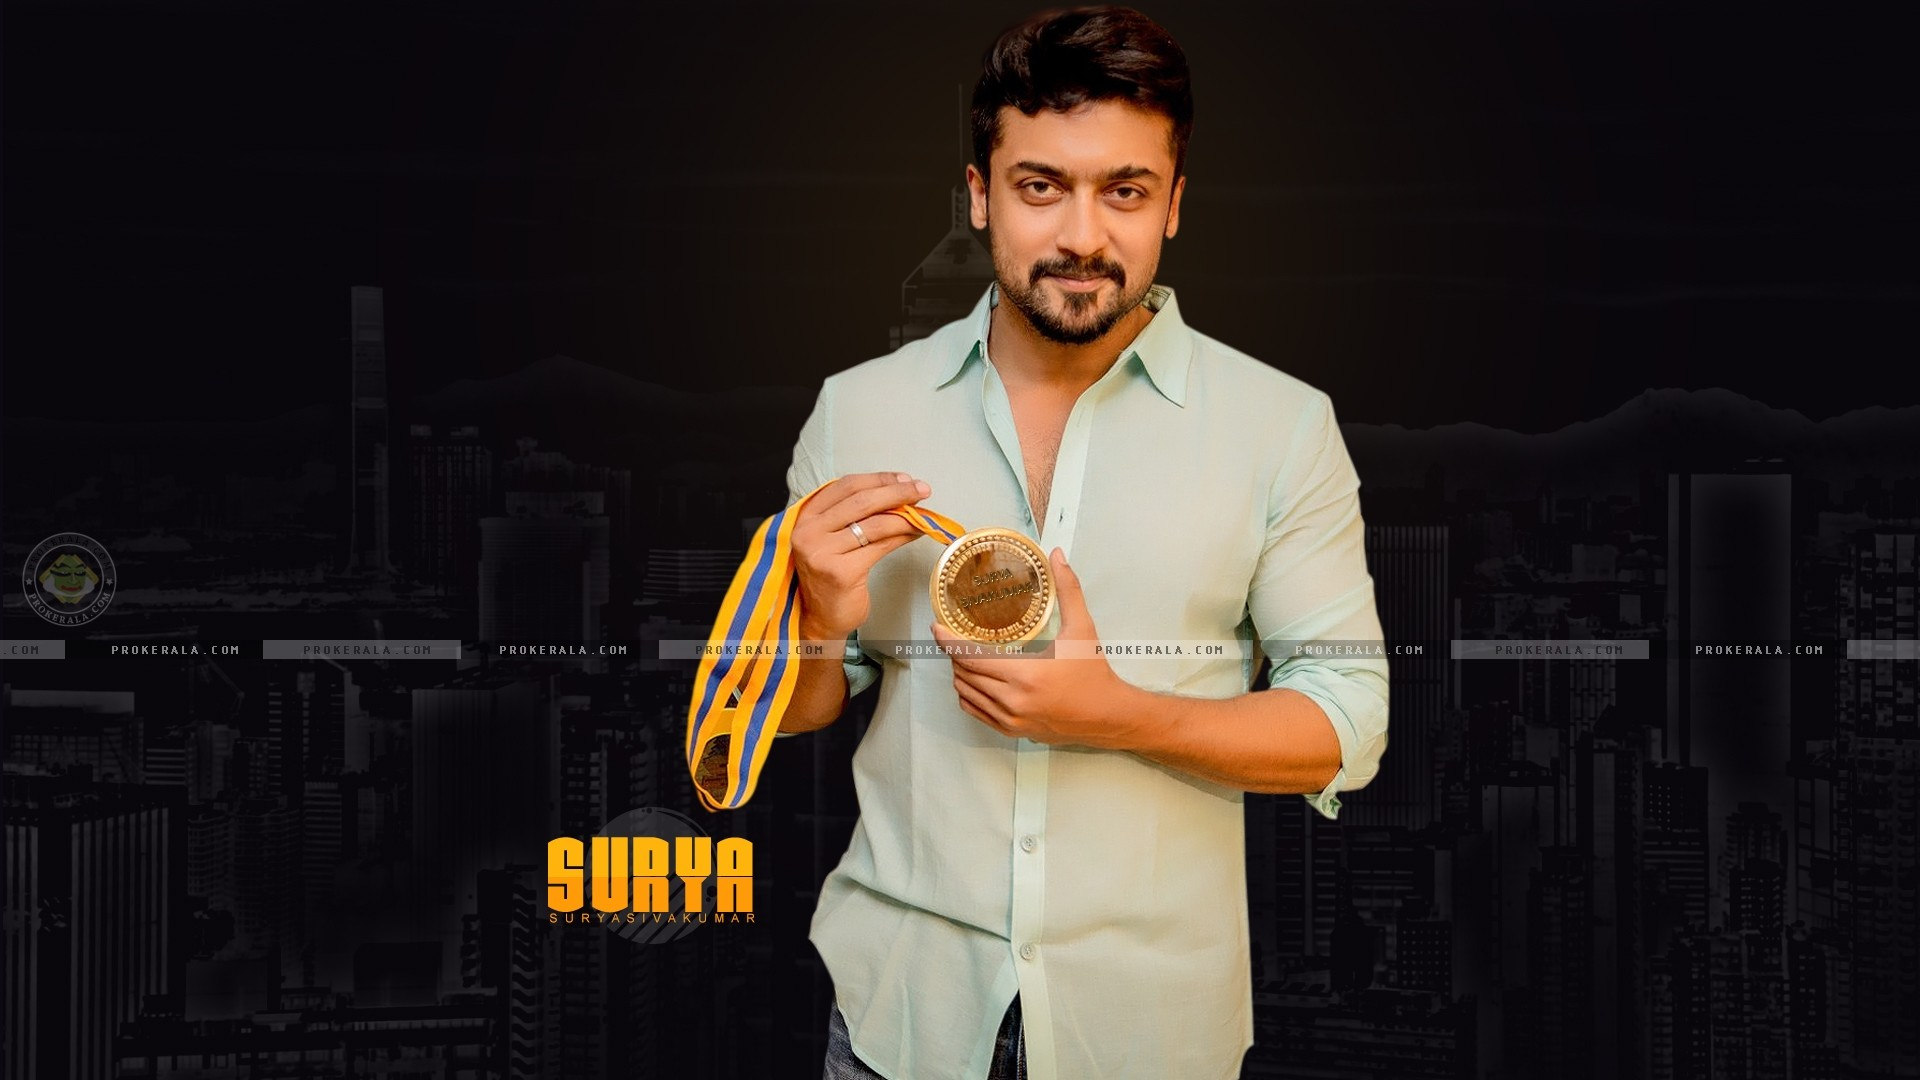 Surya hd wallpaper 2018 76 images 1920x1080 surya in singam 2 surya wallpapers for download still 36 altavistaventures Image collections